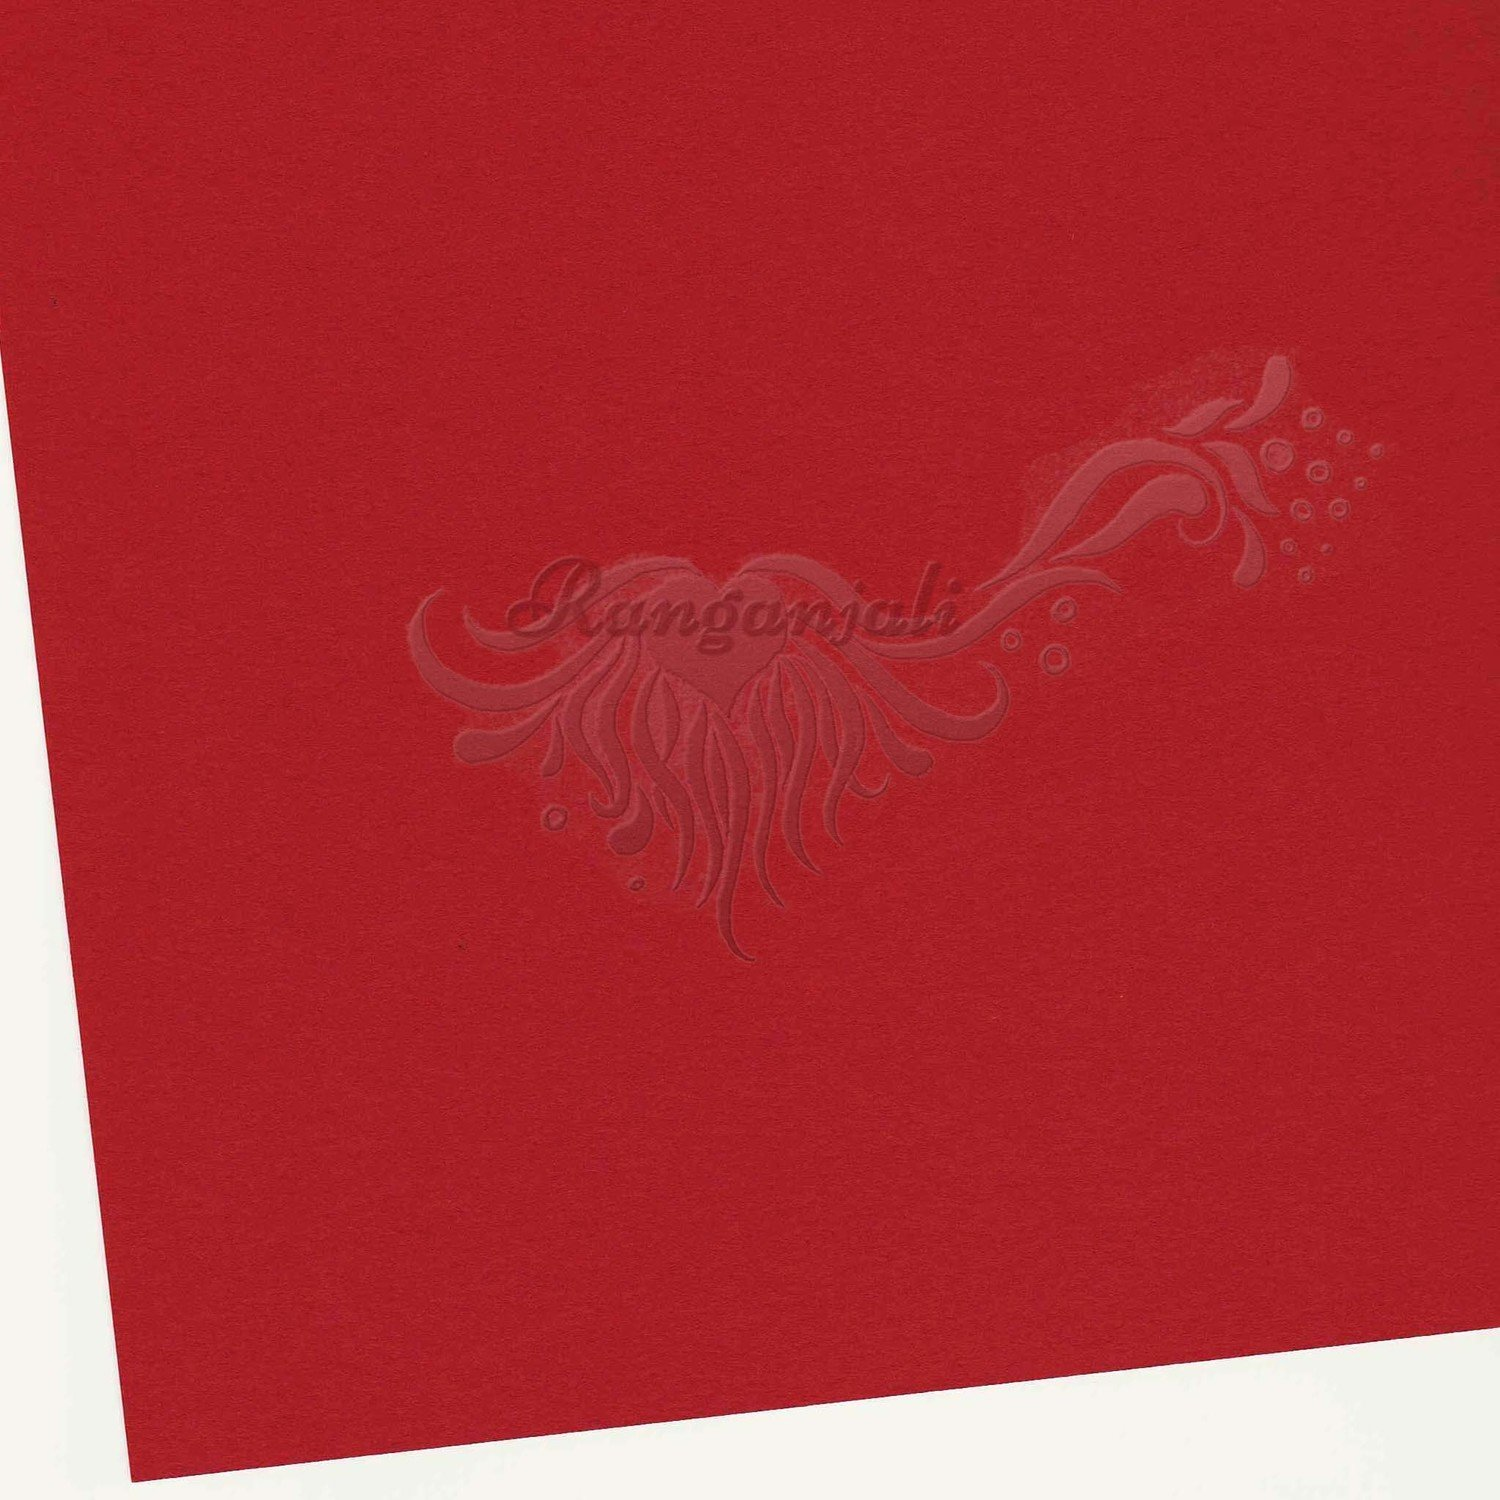 RICHMOND RED - 250GSM Heavyweight Smooth A4 Cardstock- 5/pk